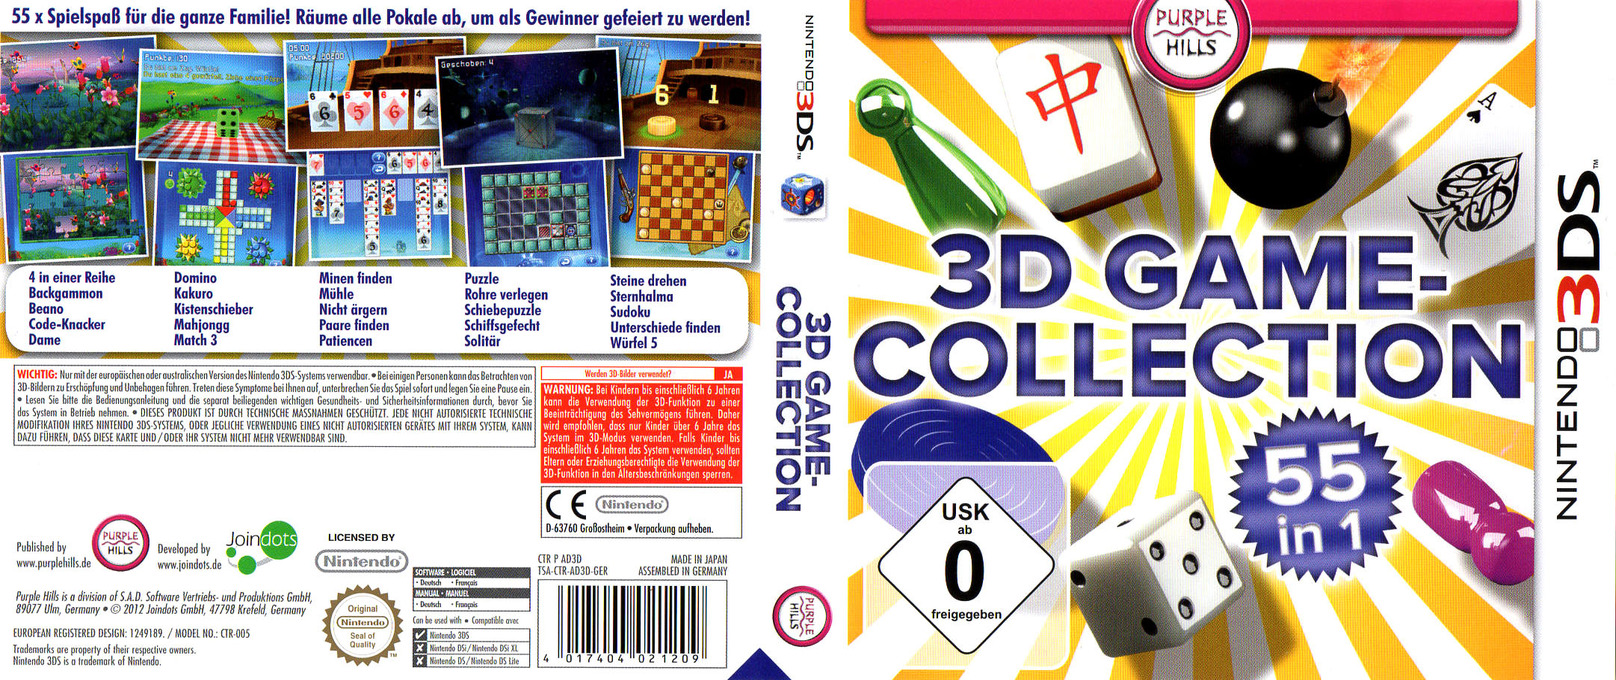 AD3D - 3D Game Collection - 55 in 1